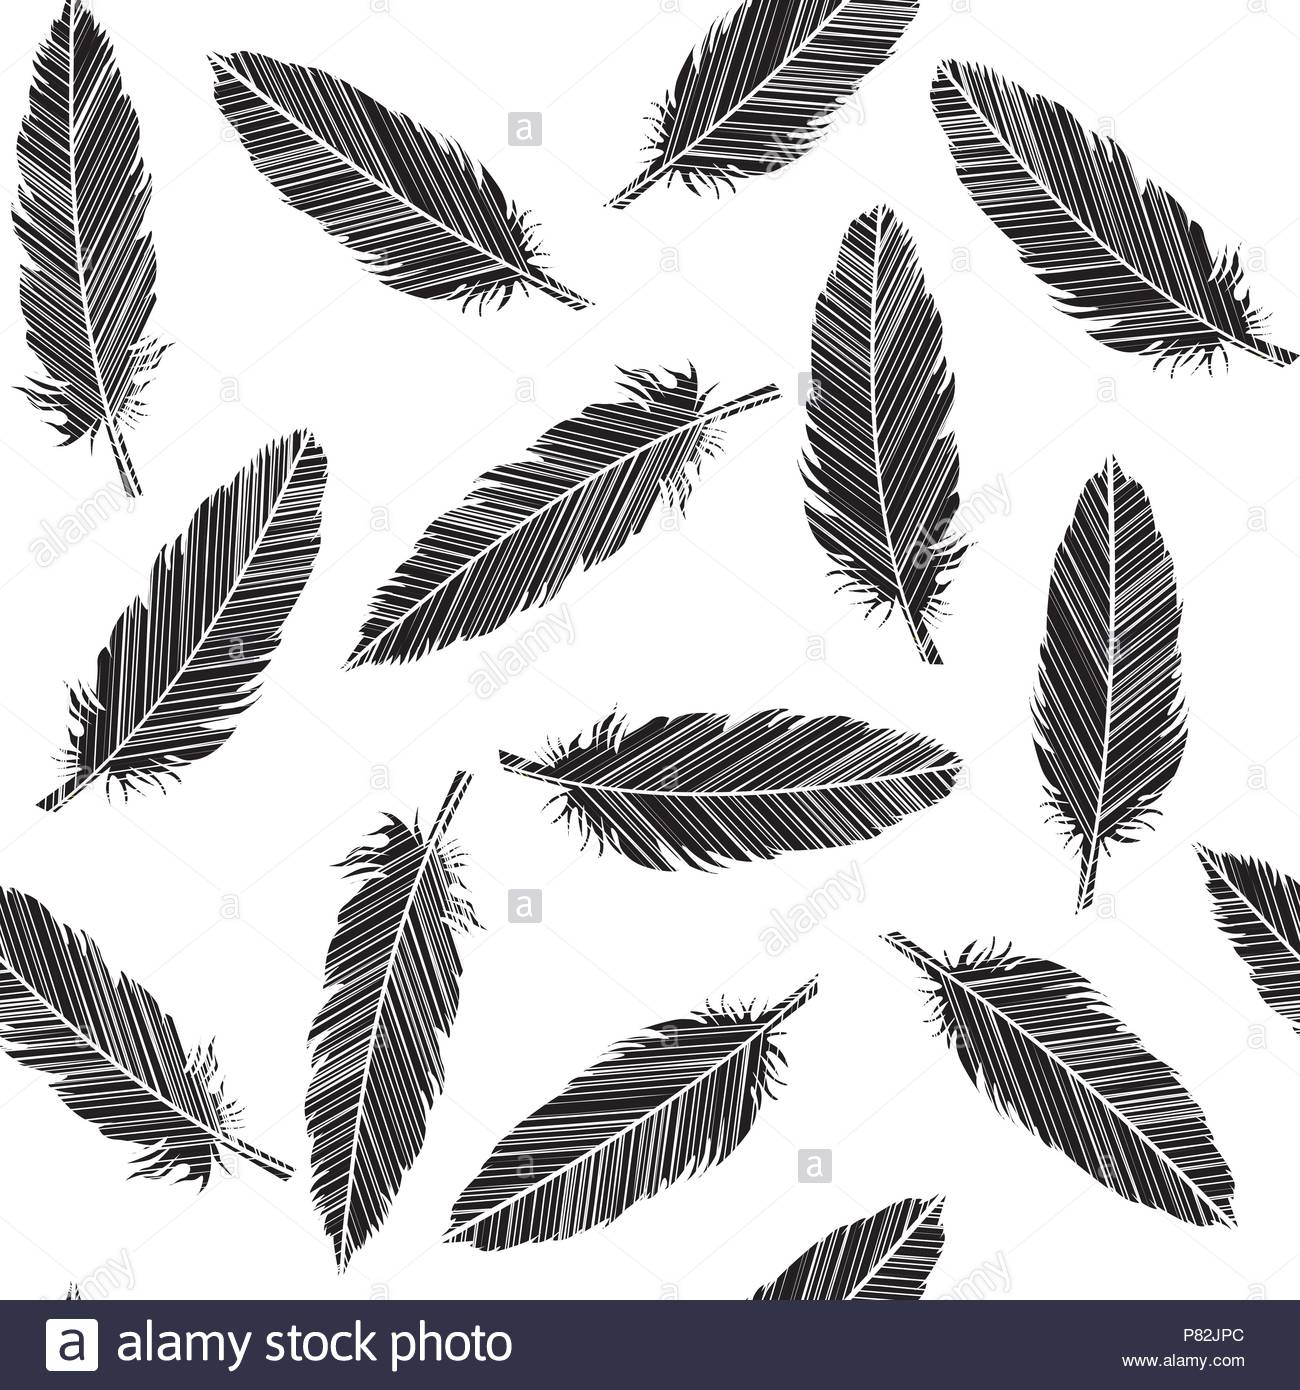 Birds feathers striped in black and white - Stock Image